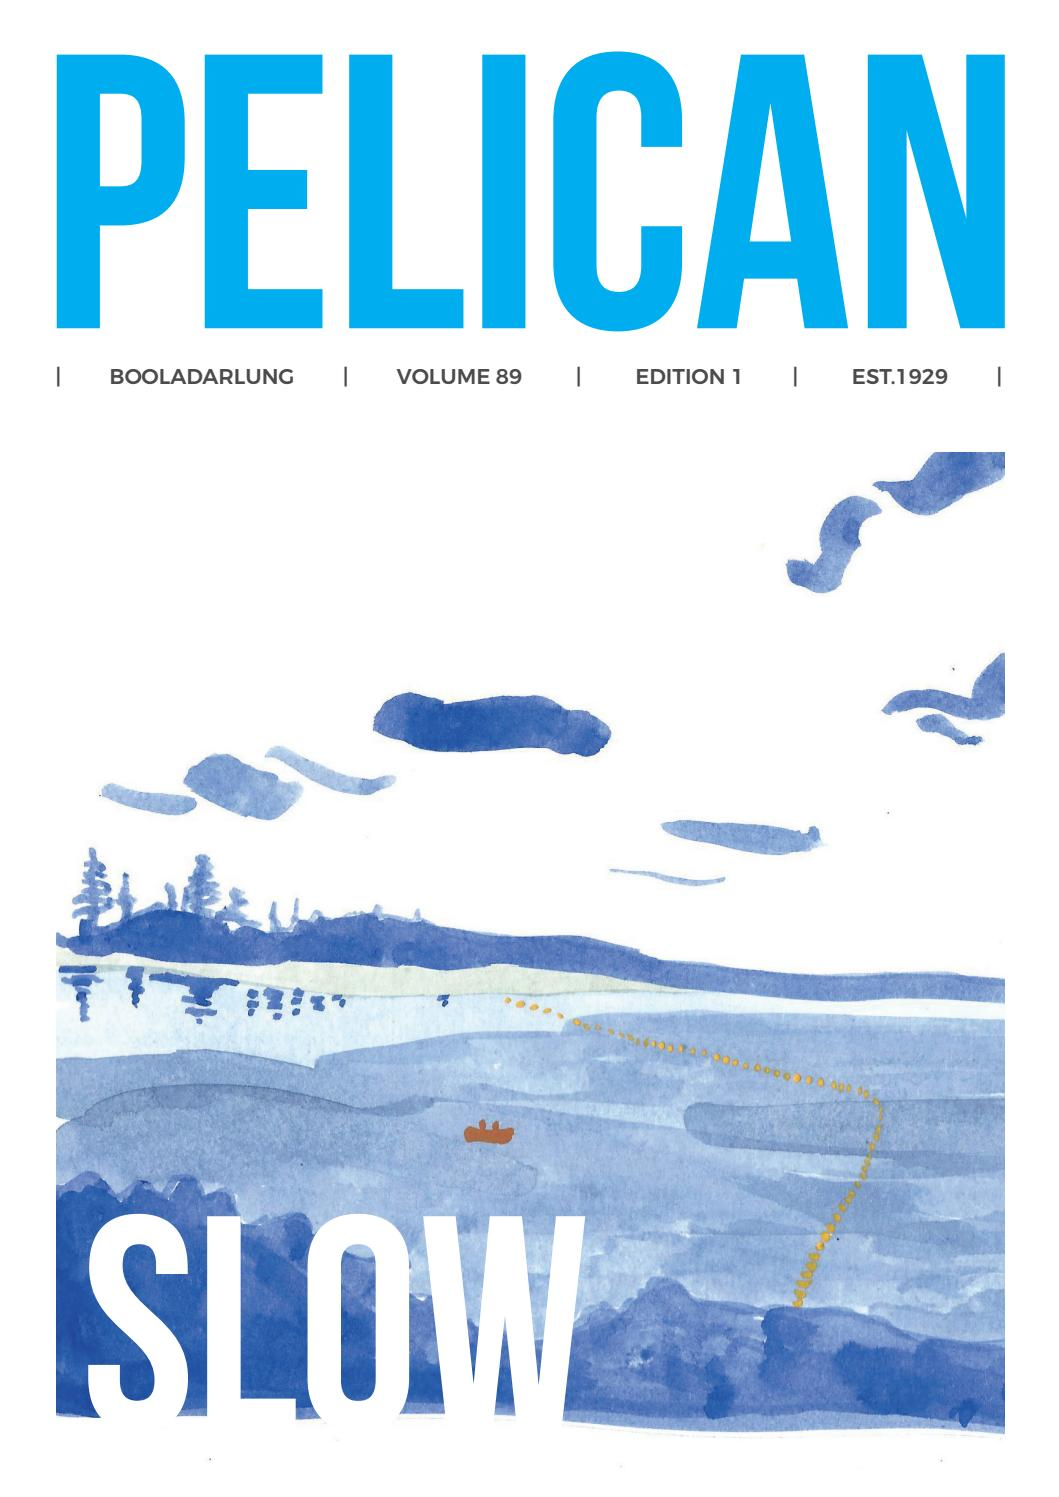 Pelican edition 1 issu by UWA Student Guild - issuu